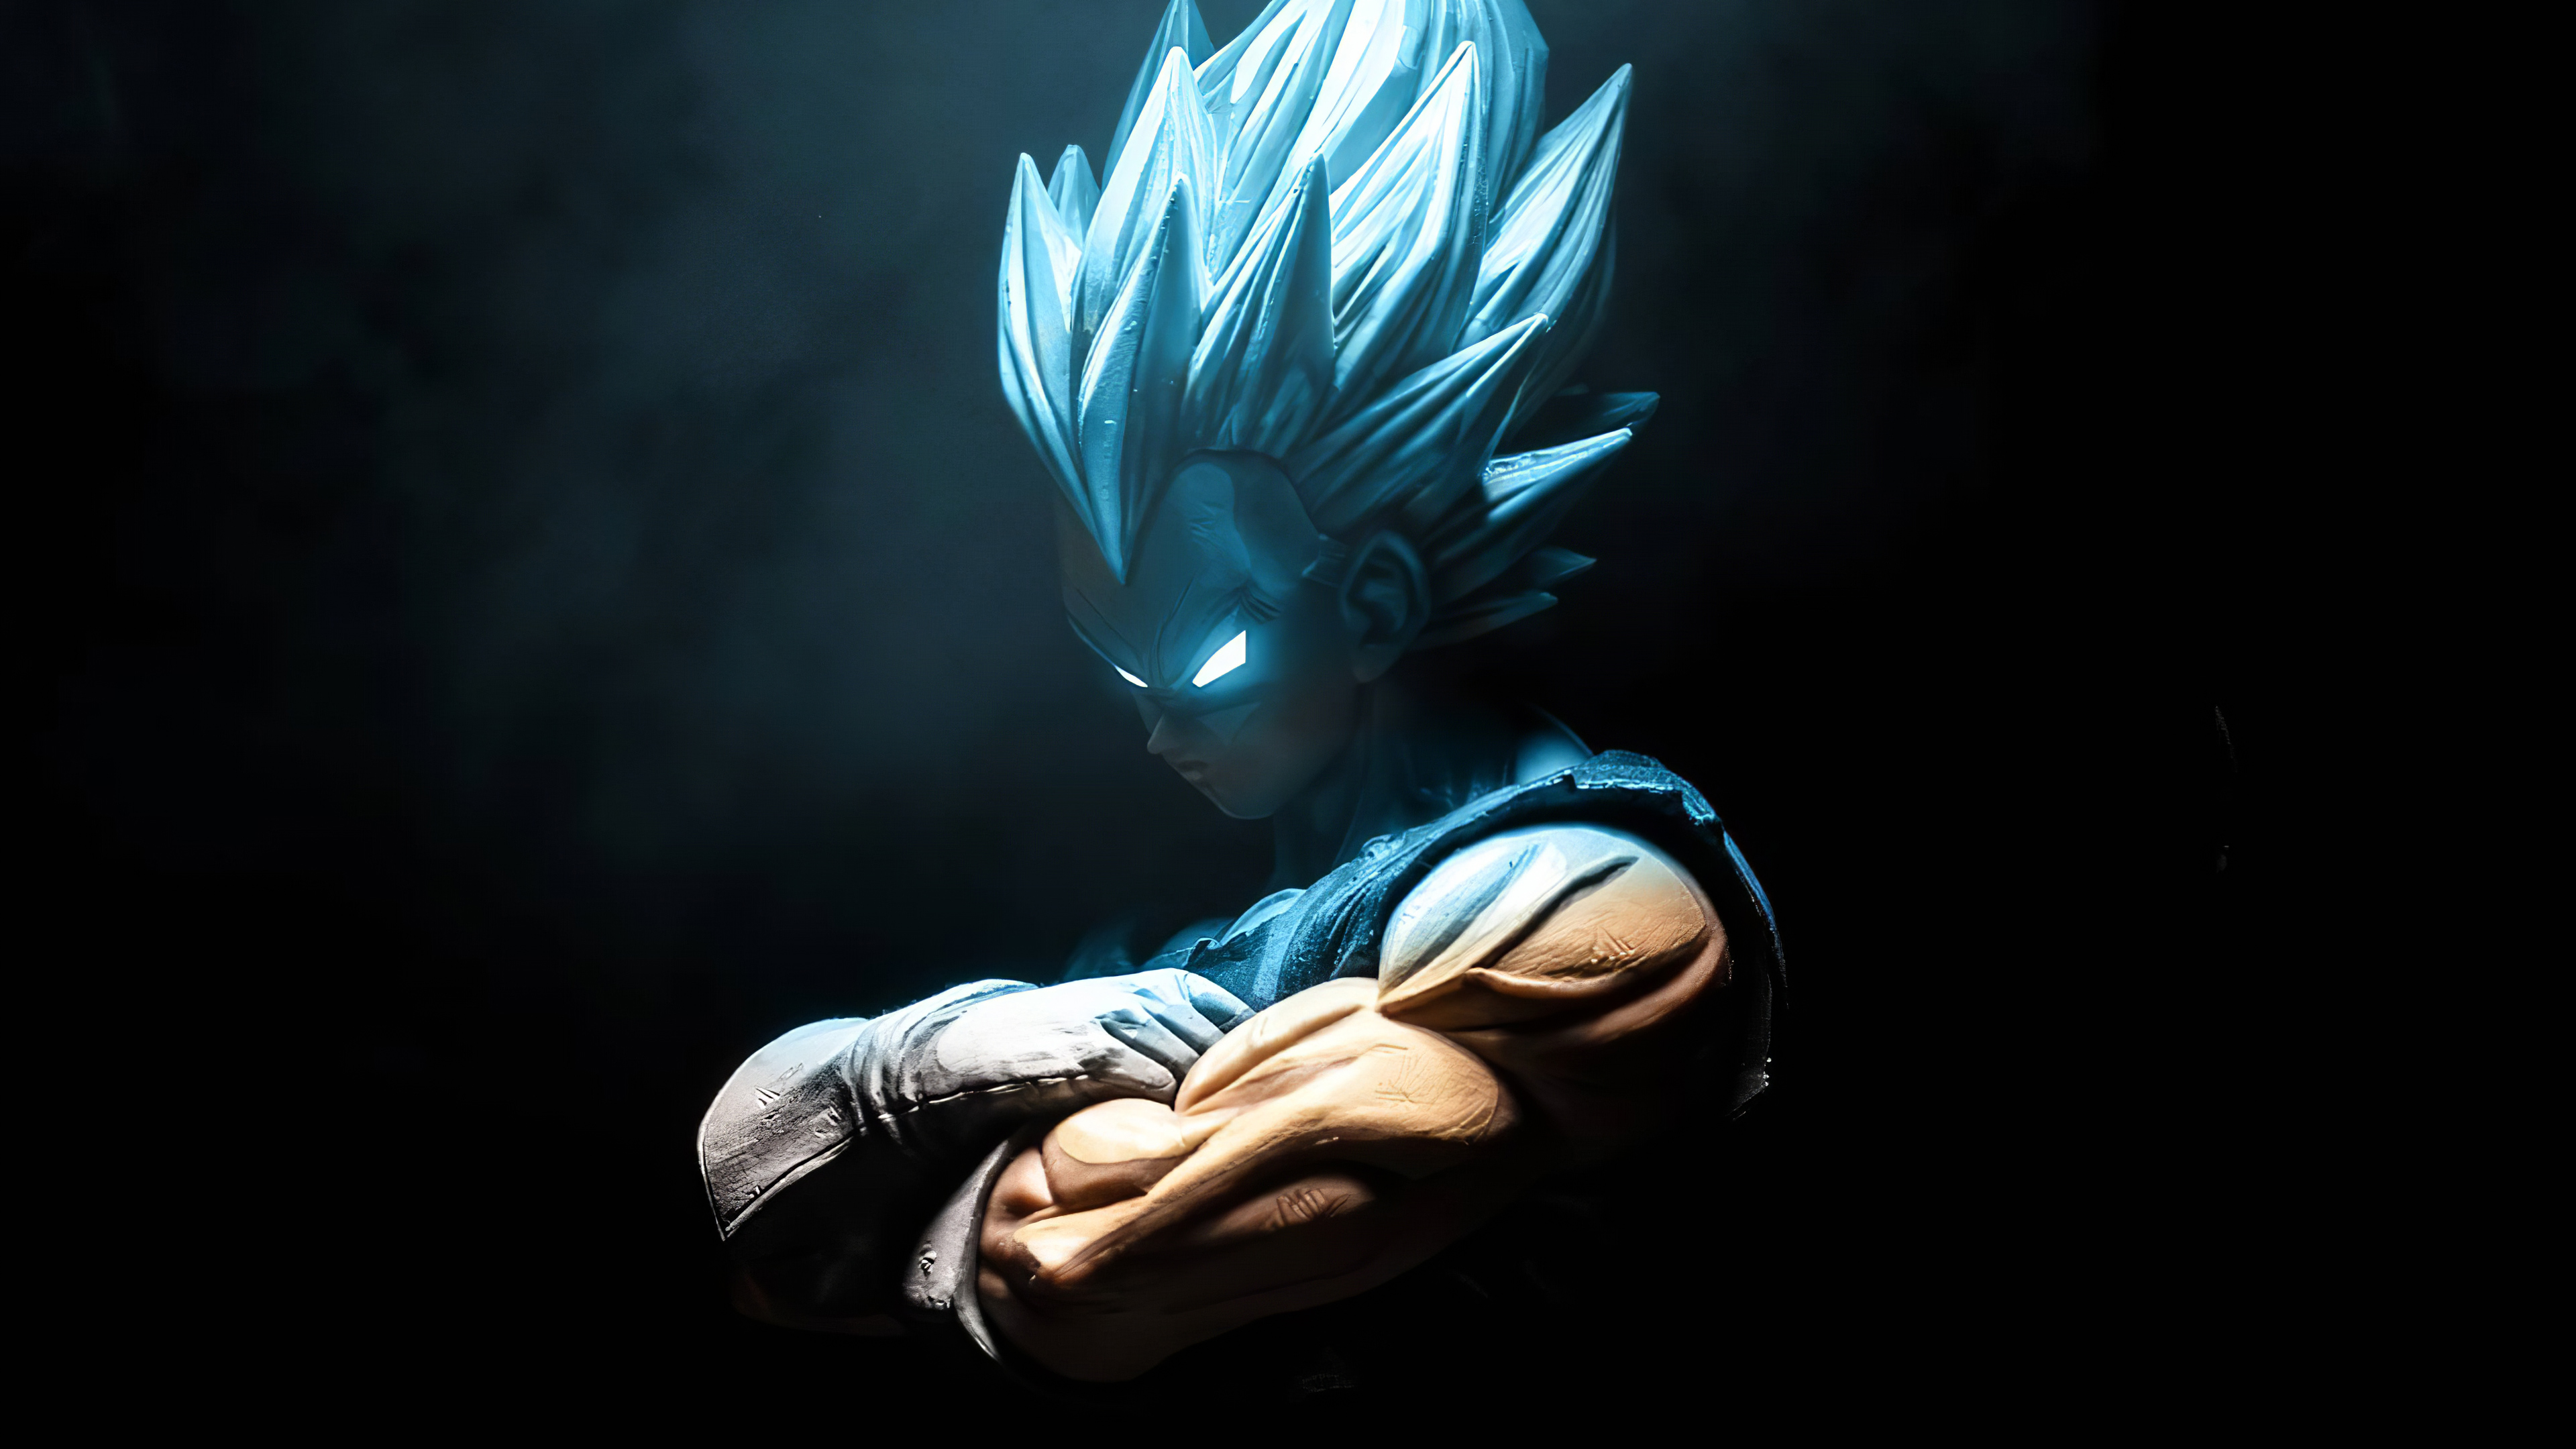 Dragonball Wallpaper 4k Vegeta Doraemon